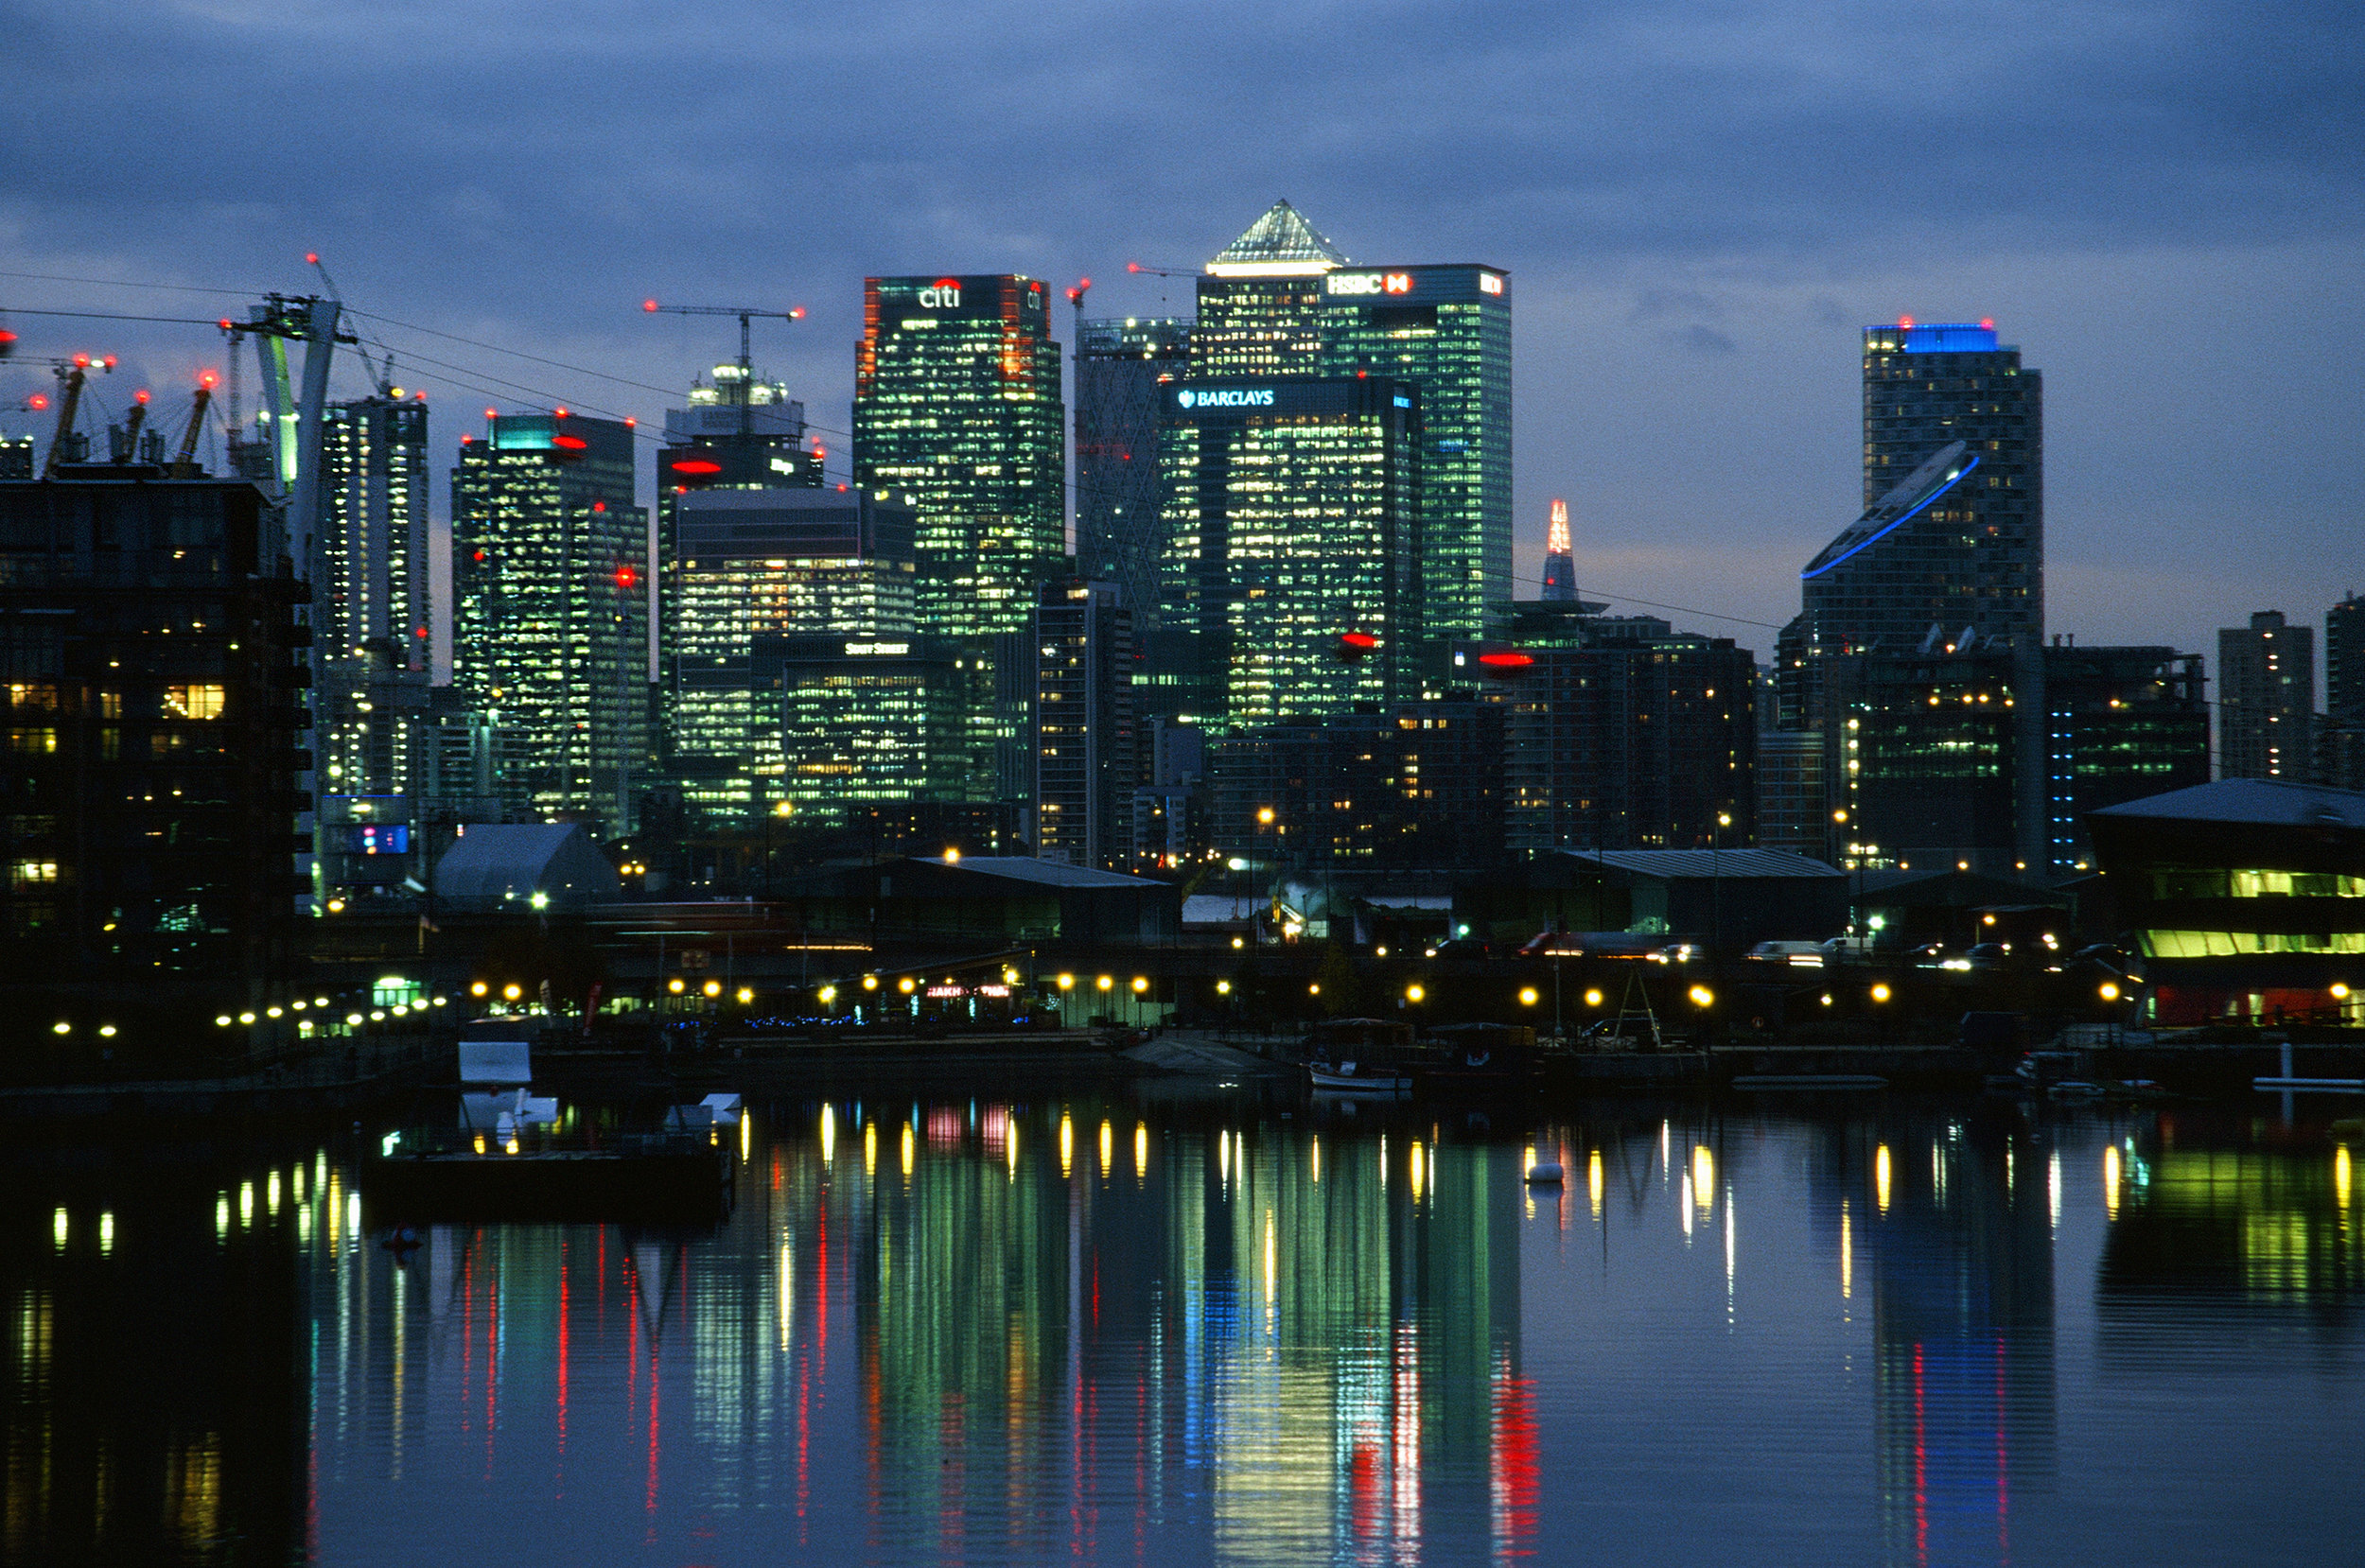 Canary Wharf at night.jpg